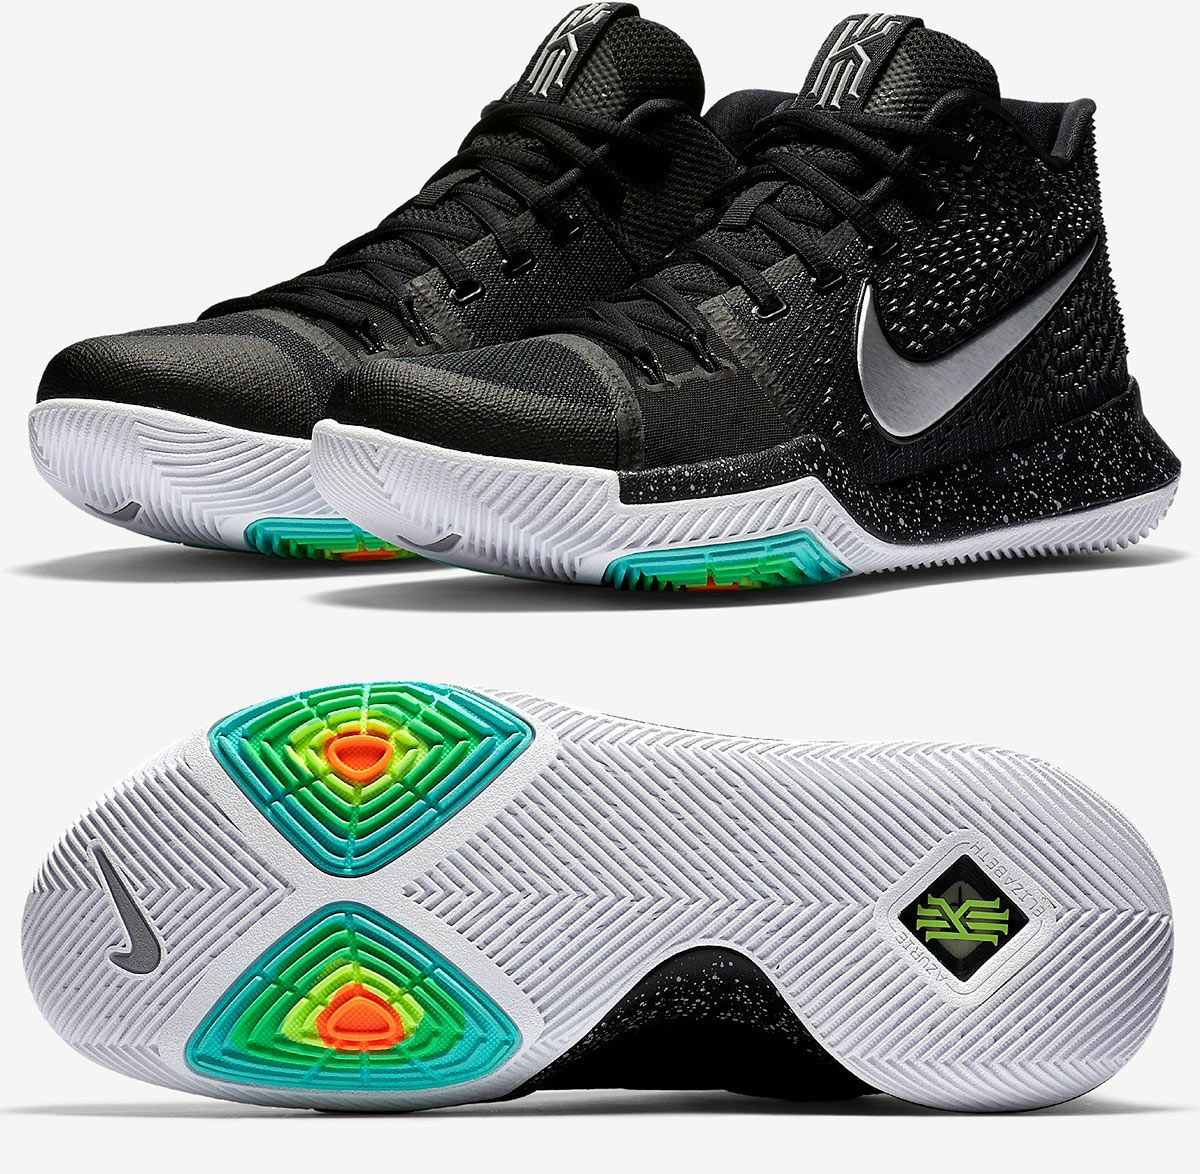 wholesale dealer cdcad dc48d Kyrie 3 shoes  at Foot Locker  http   mightyshoes.net foot-locker-promo-codes   free shipping!  kyrieirving  footlocker   Shoes  Nike Basketball    Pinterest ...